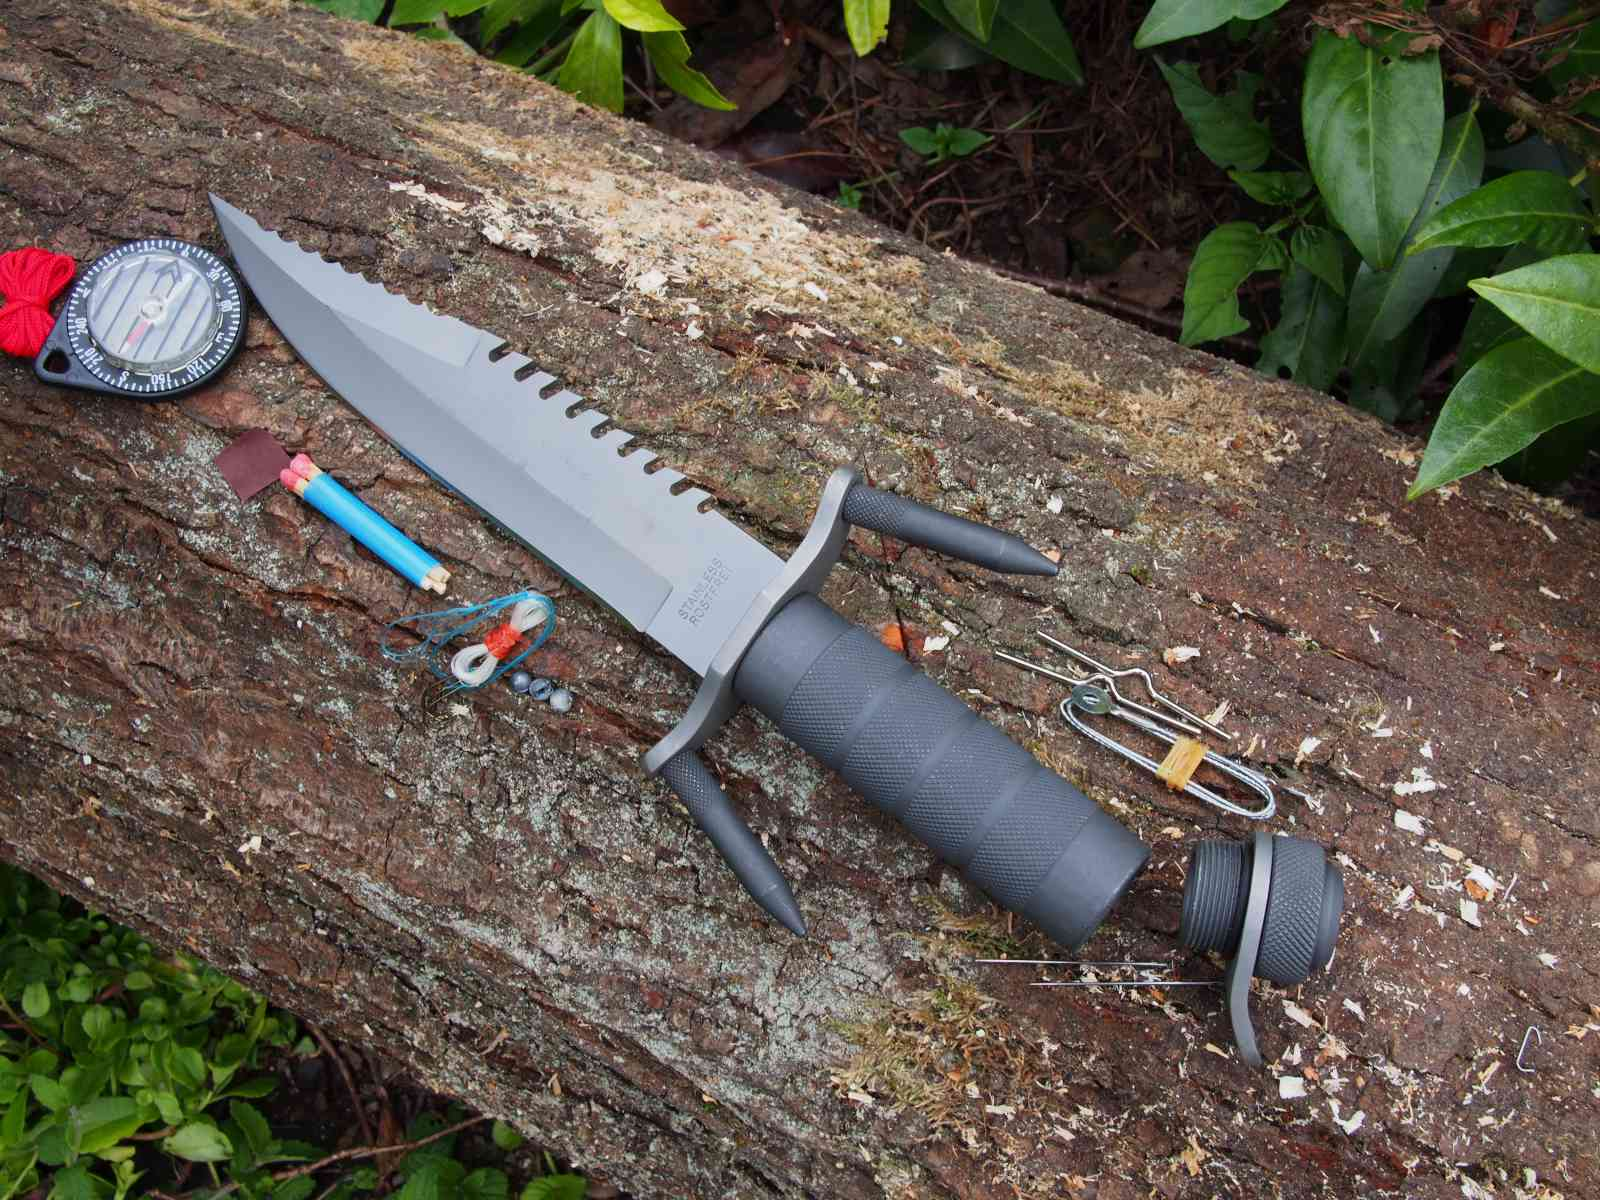 Herbertz Survival-Messer mit Survival-Kit